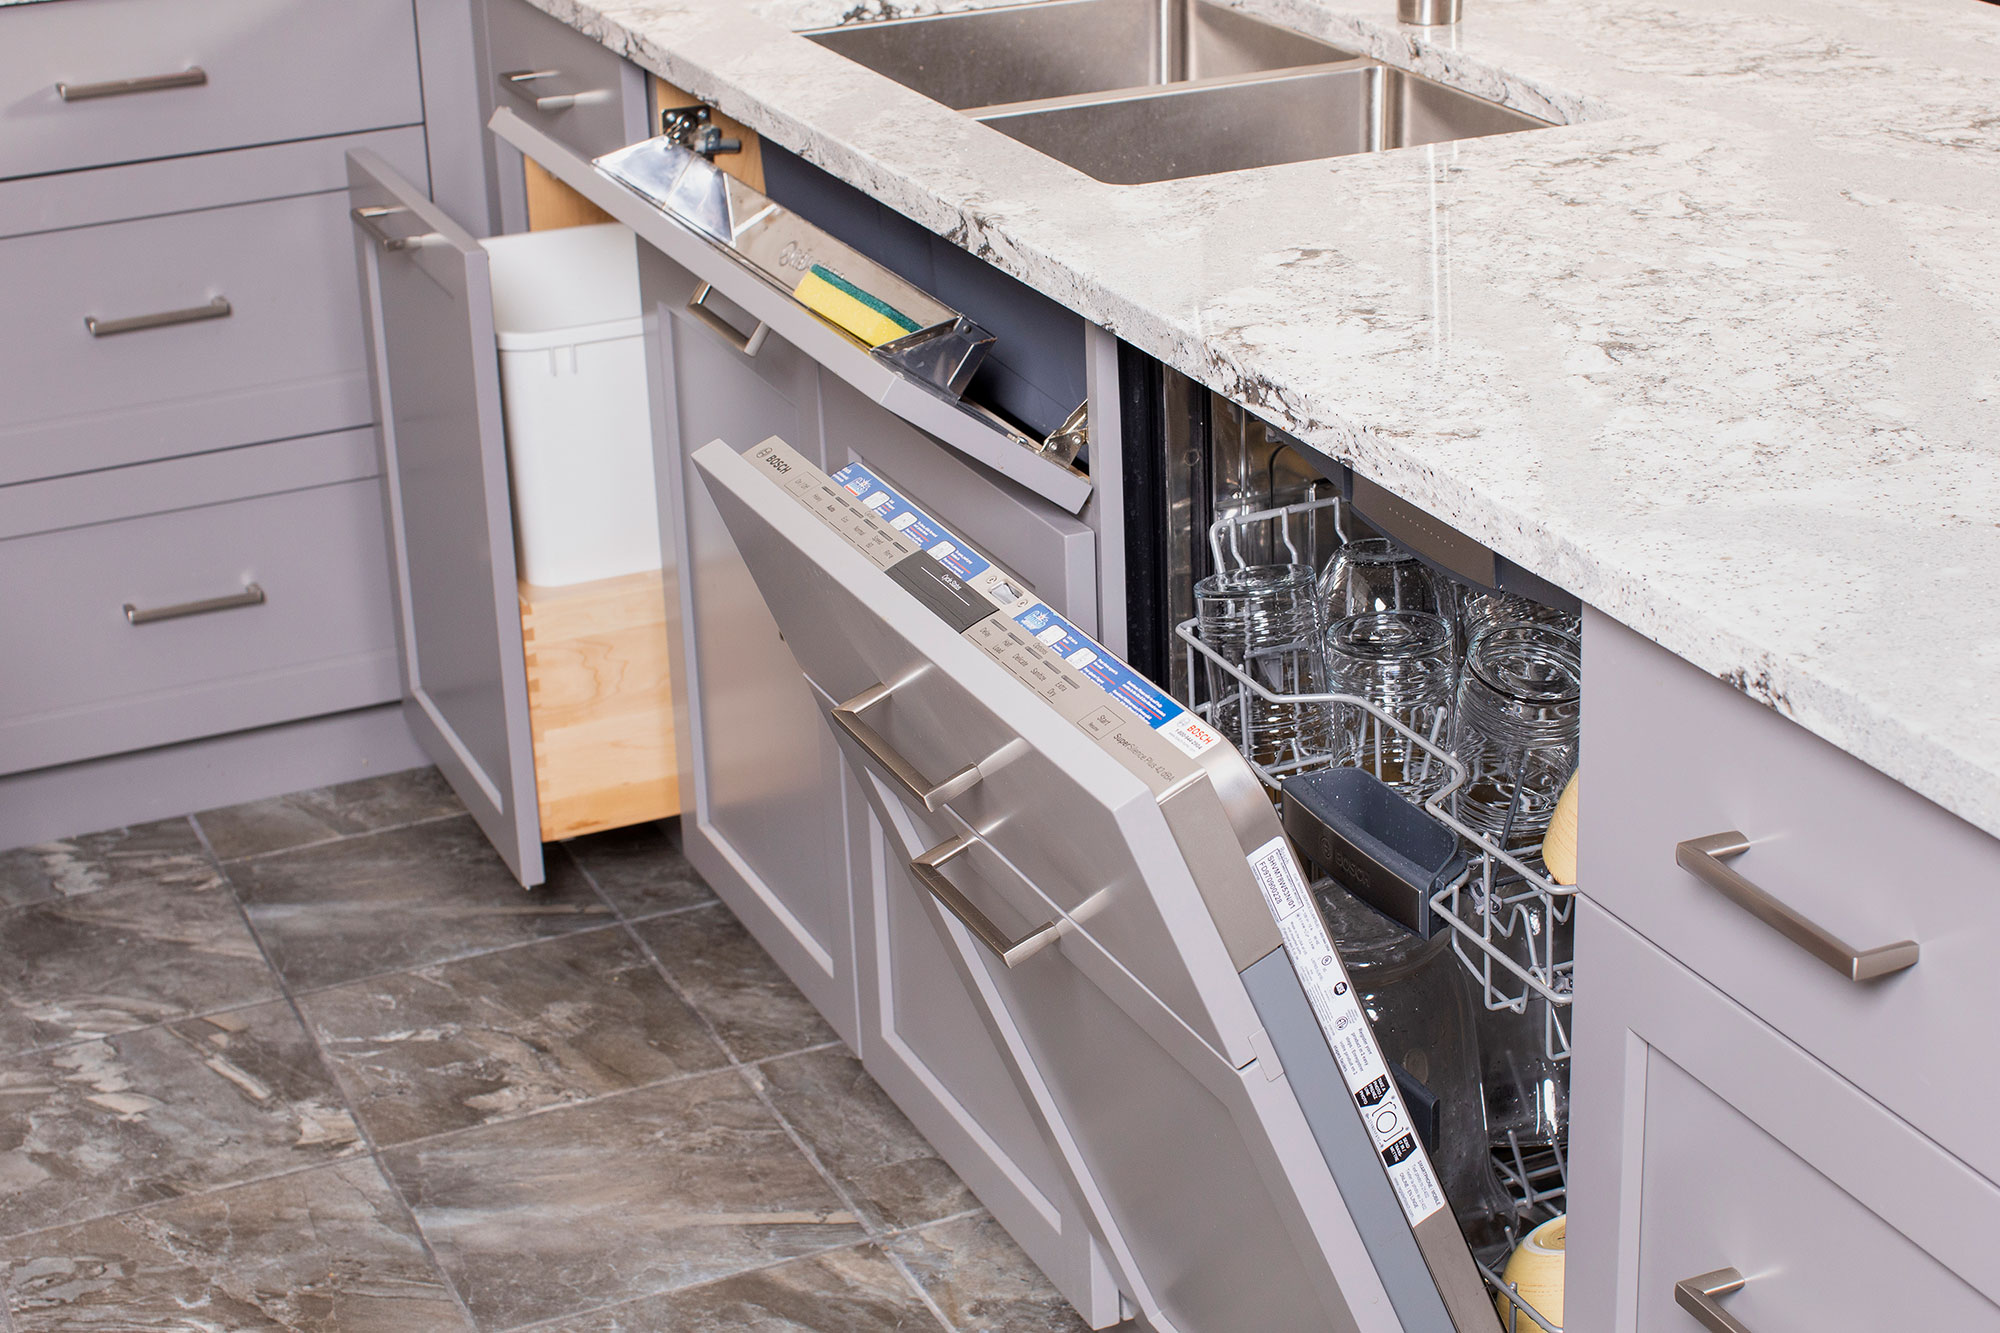 Paneled Dishwasher - Lisa Weber - Chervin Kitchen & Bath - Dockside Magazine